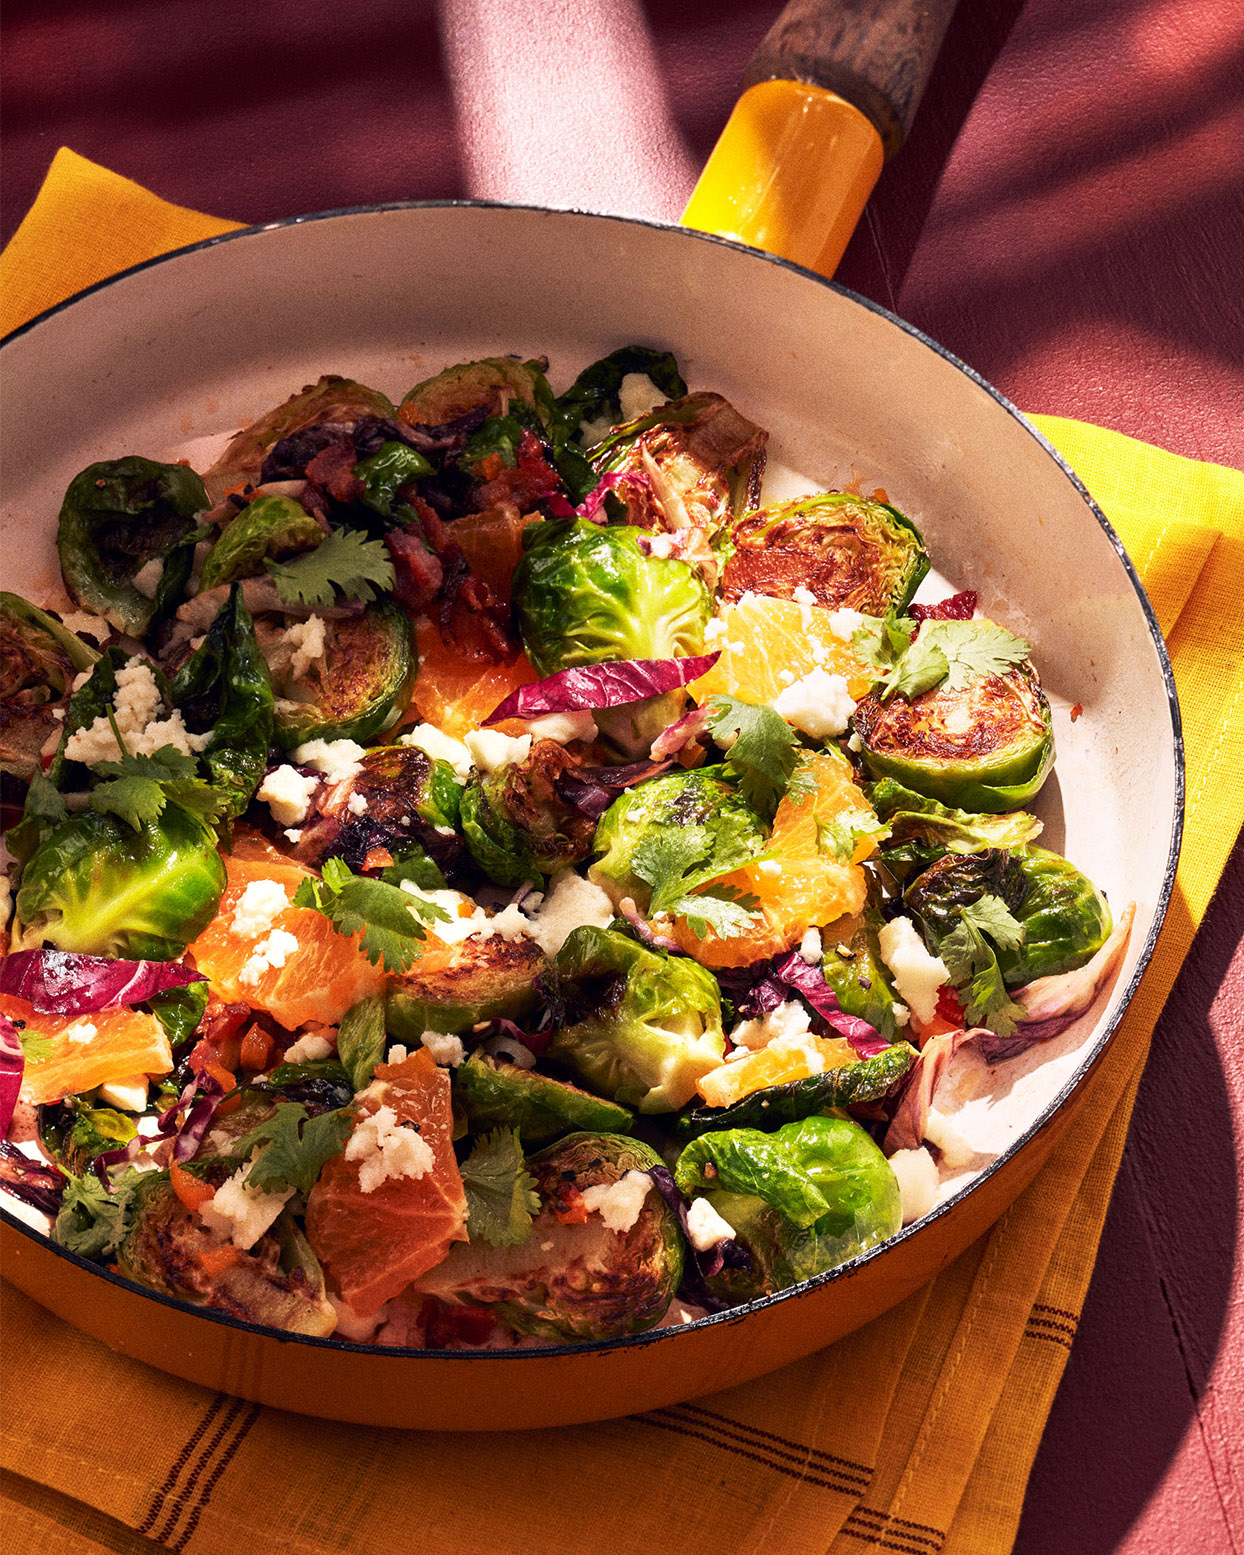 Brussels Sprouts With Bacon, Oranges & Mezcal